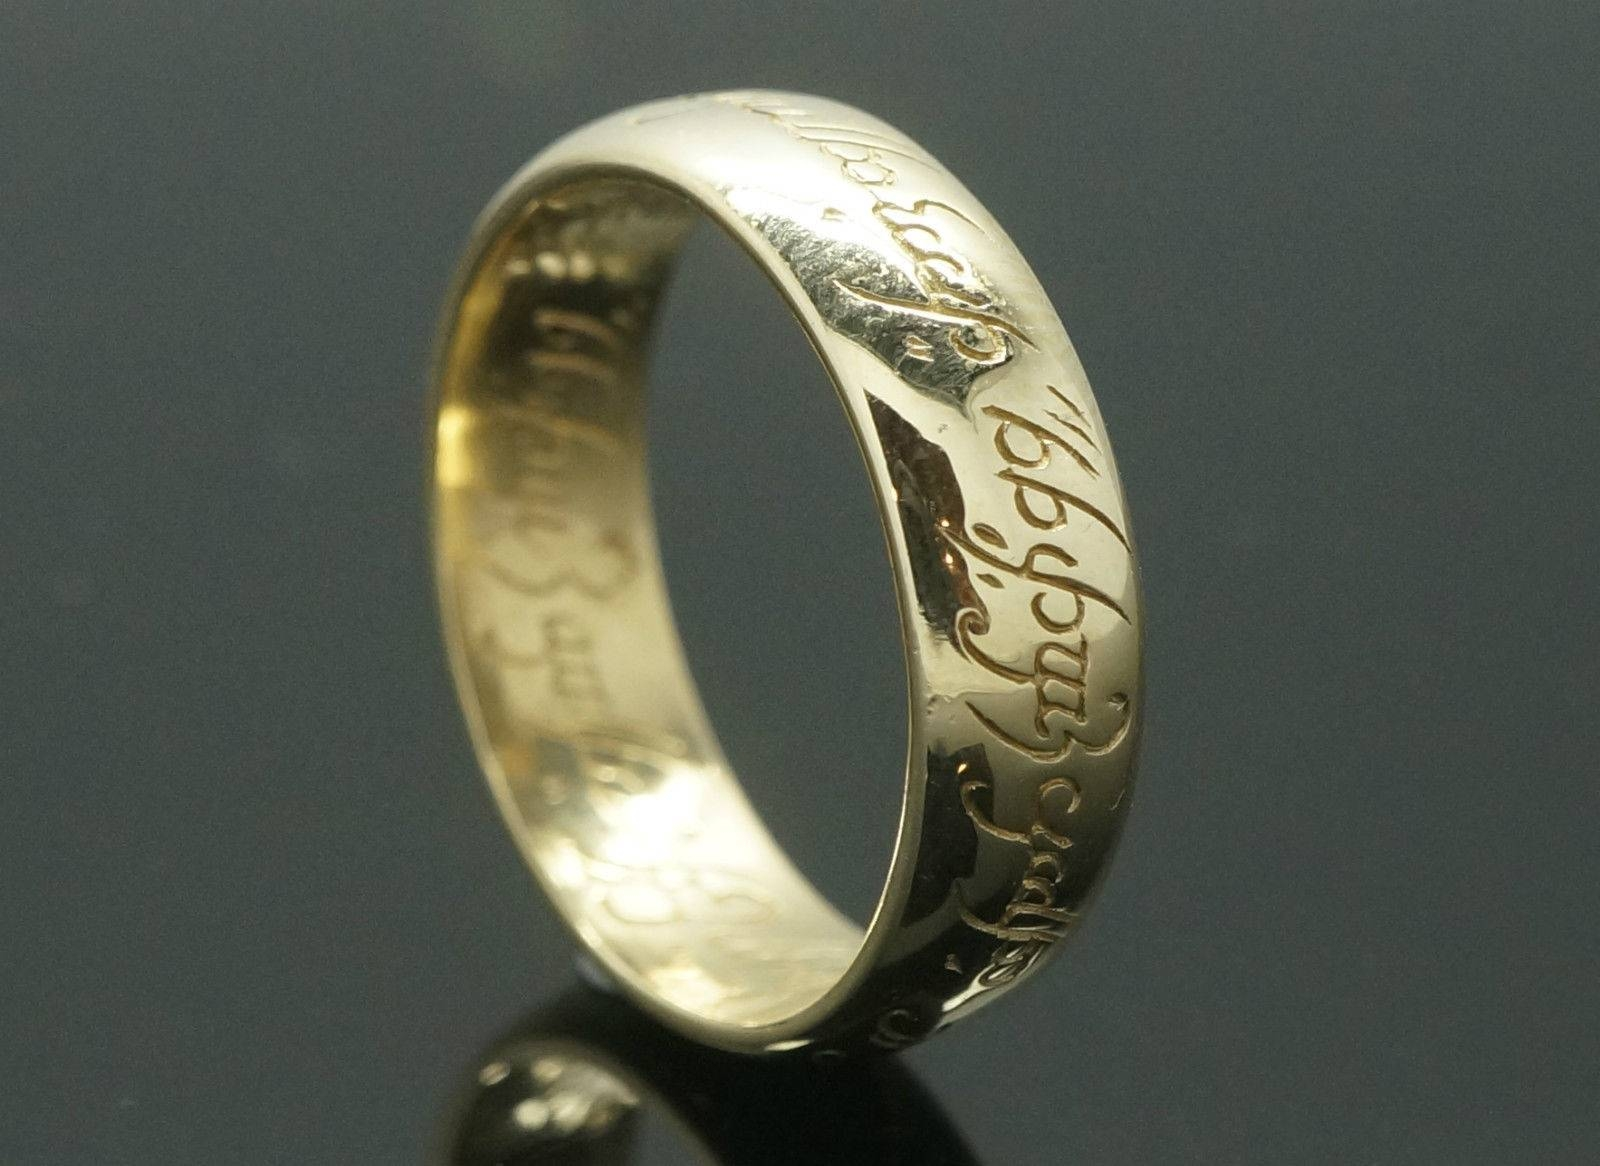 Lotr Wedding Bands (View 7 of 21)